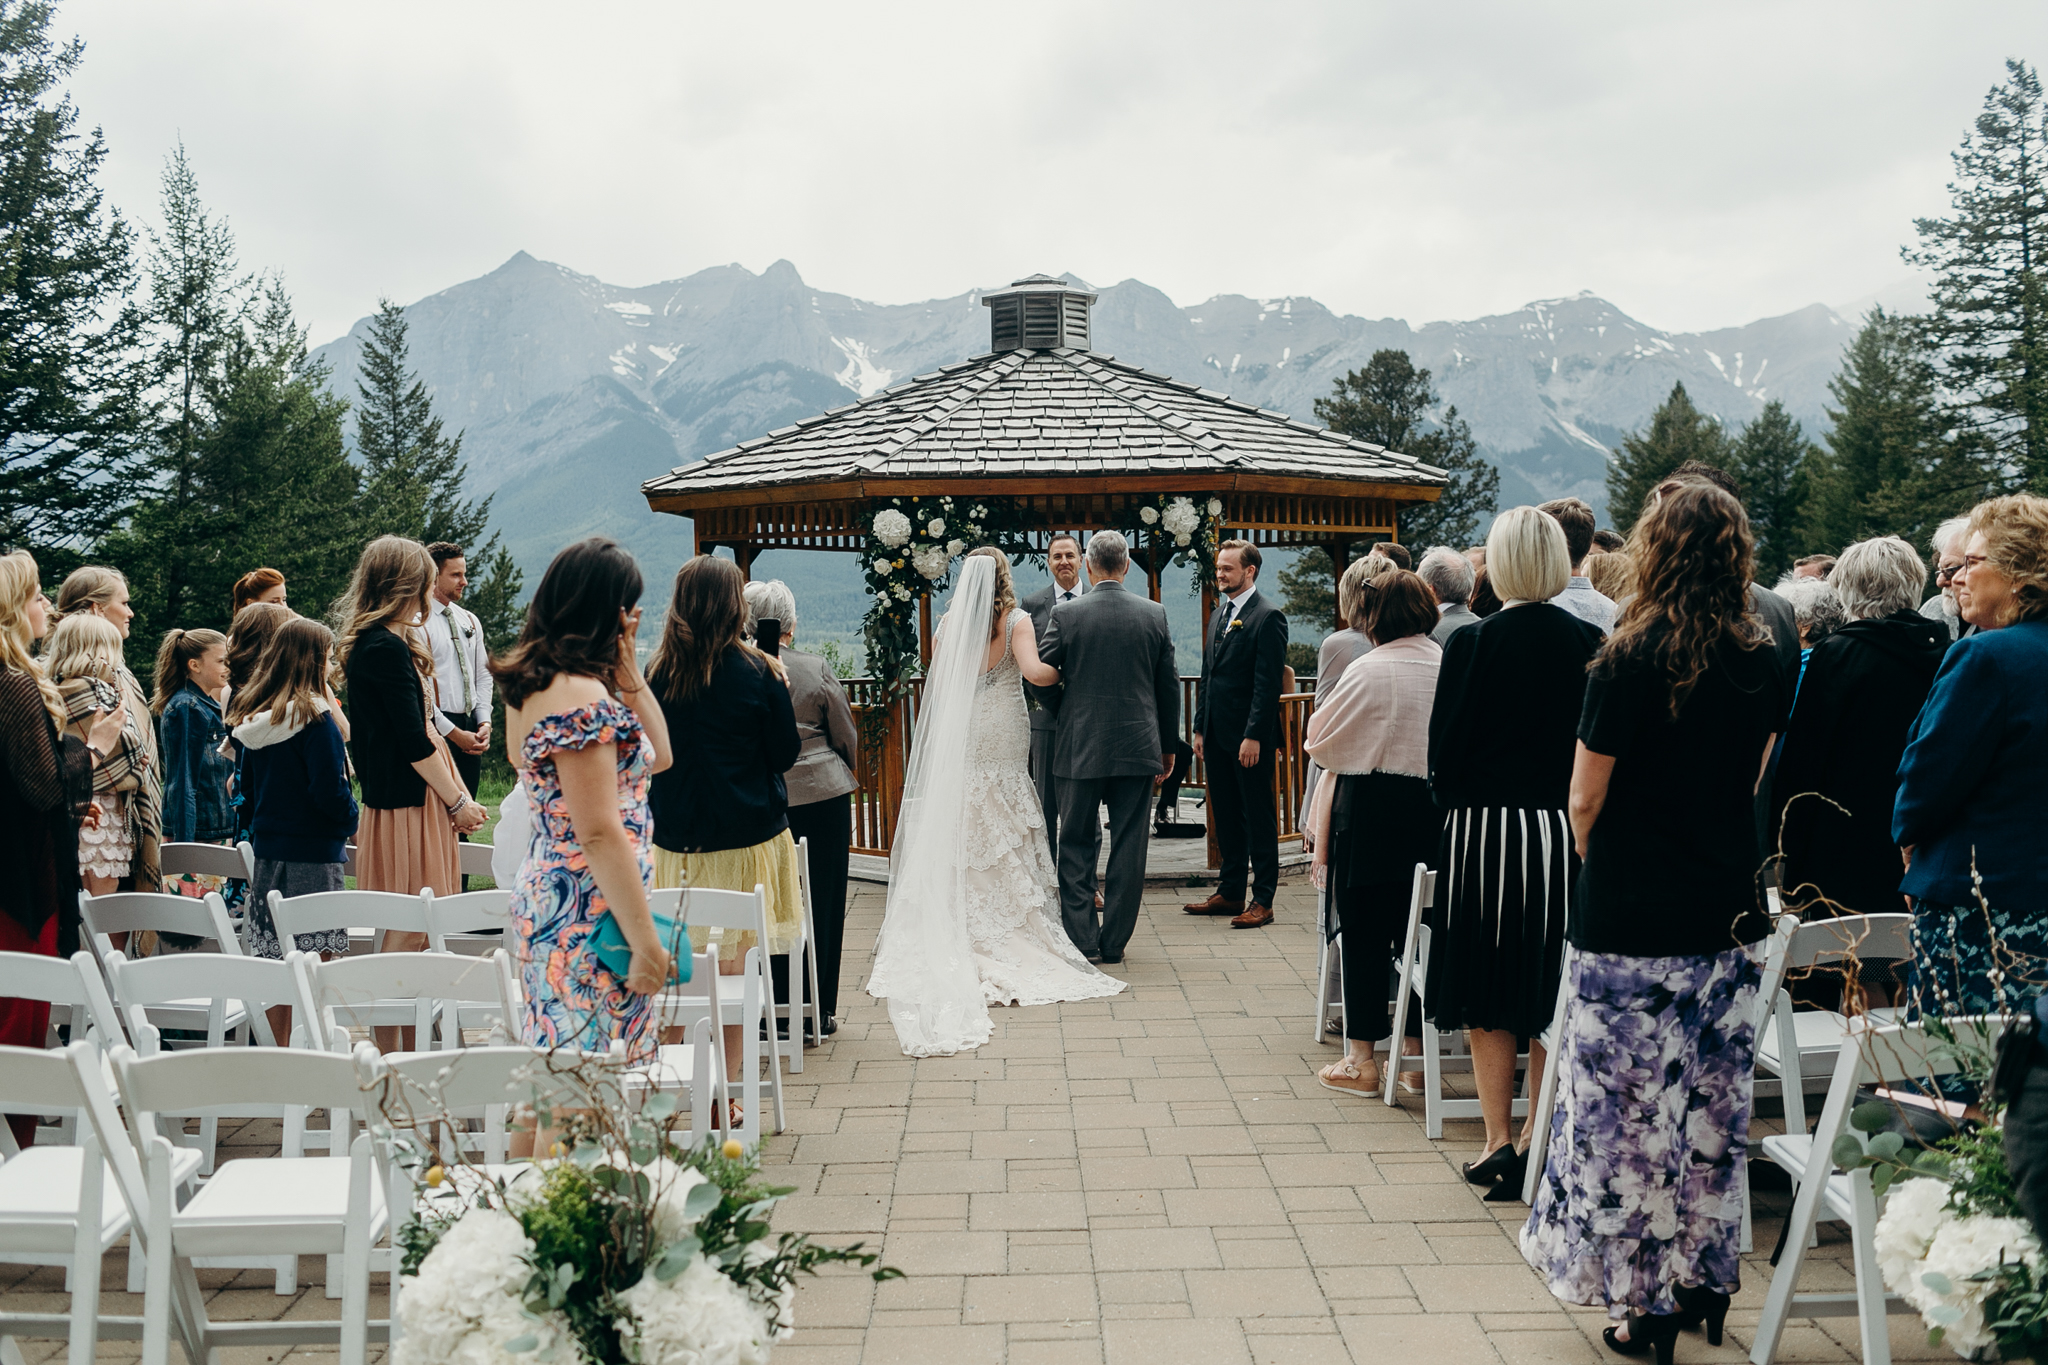 Wedding ceremony at gazebo Silvertip Resort Canmore Alberta